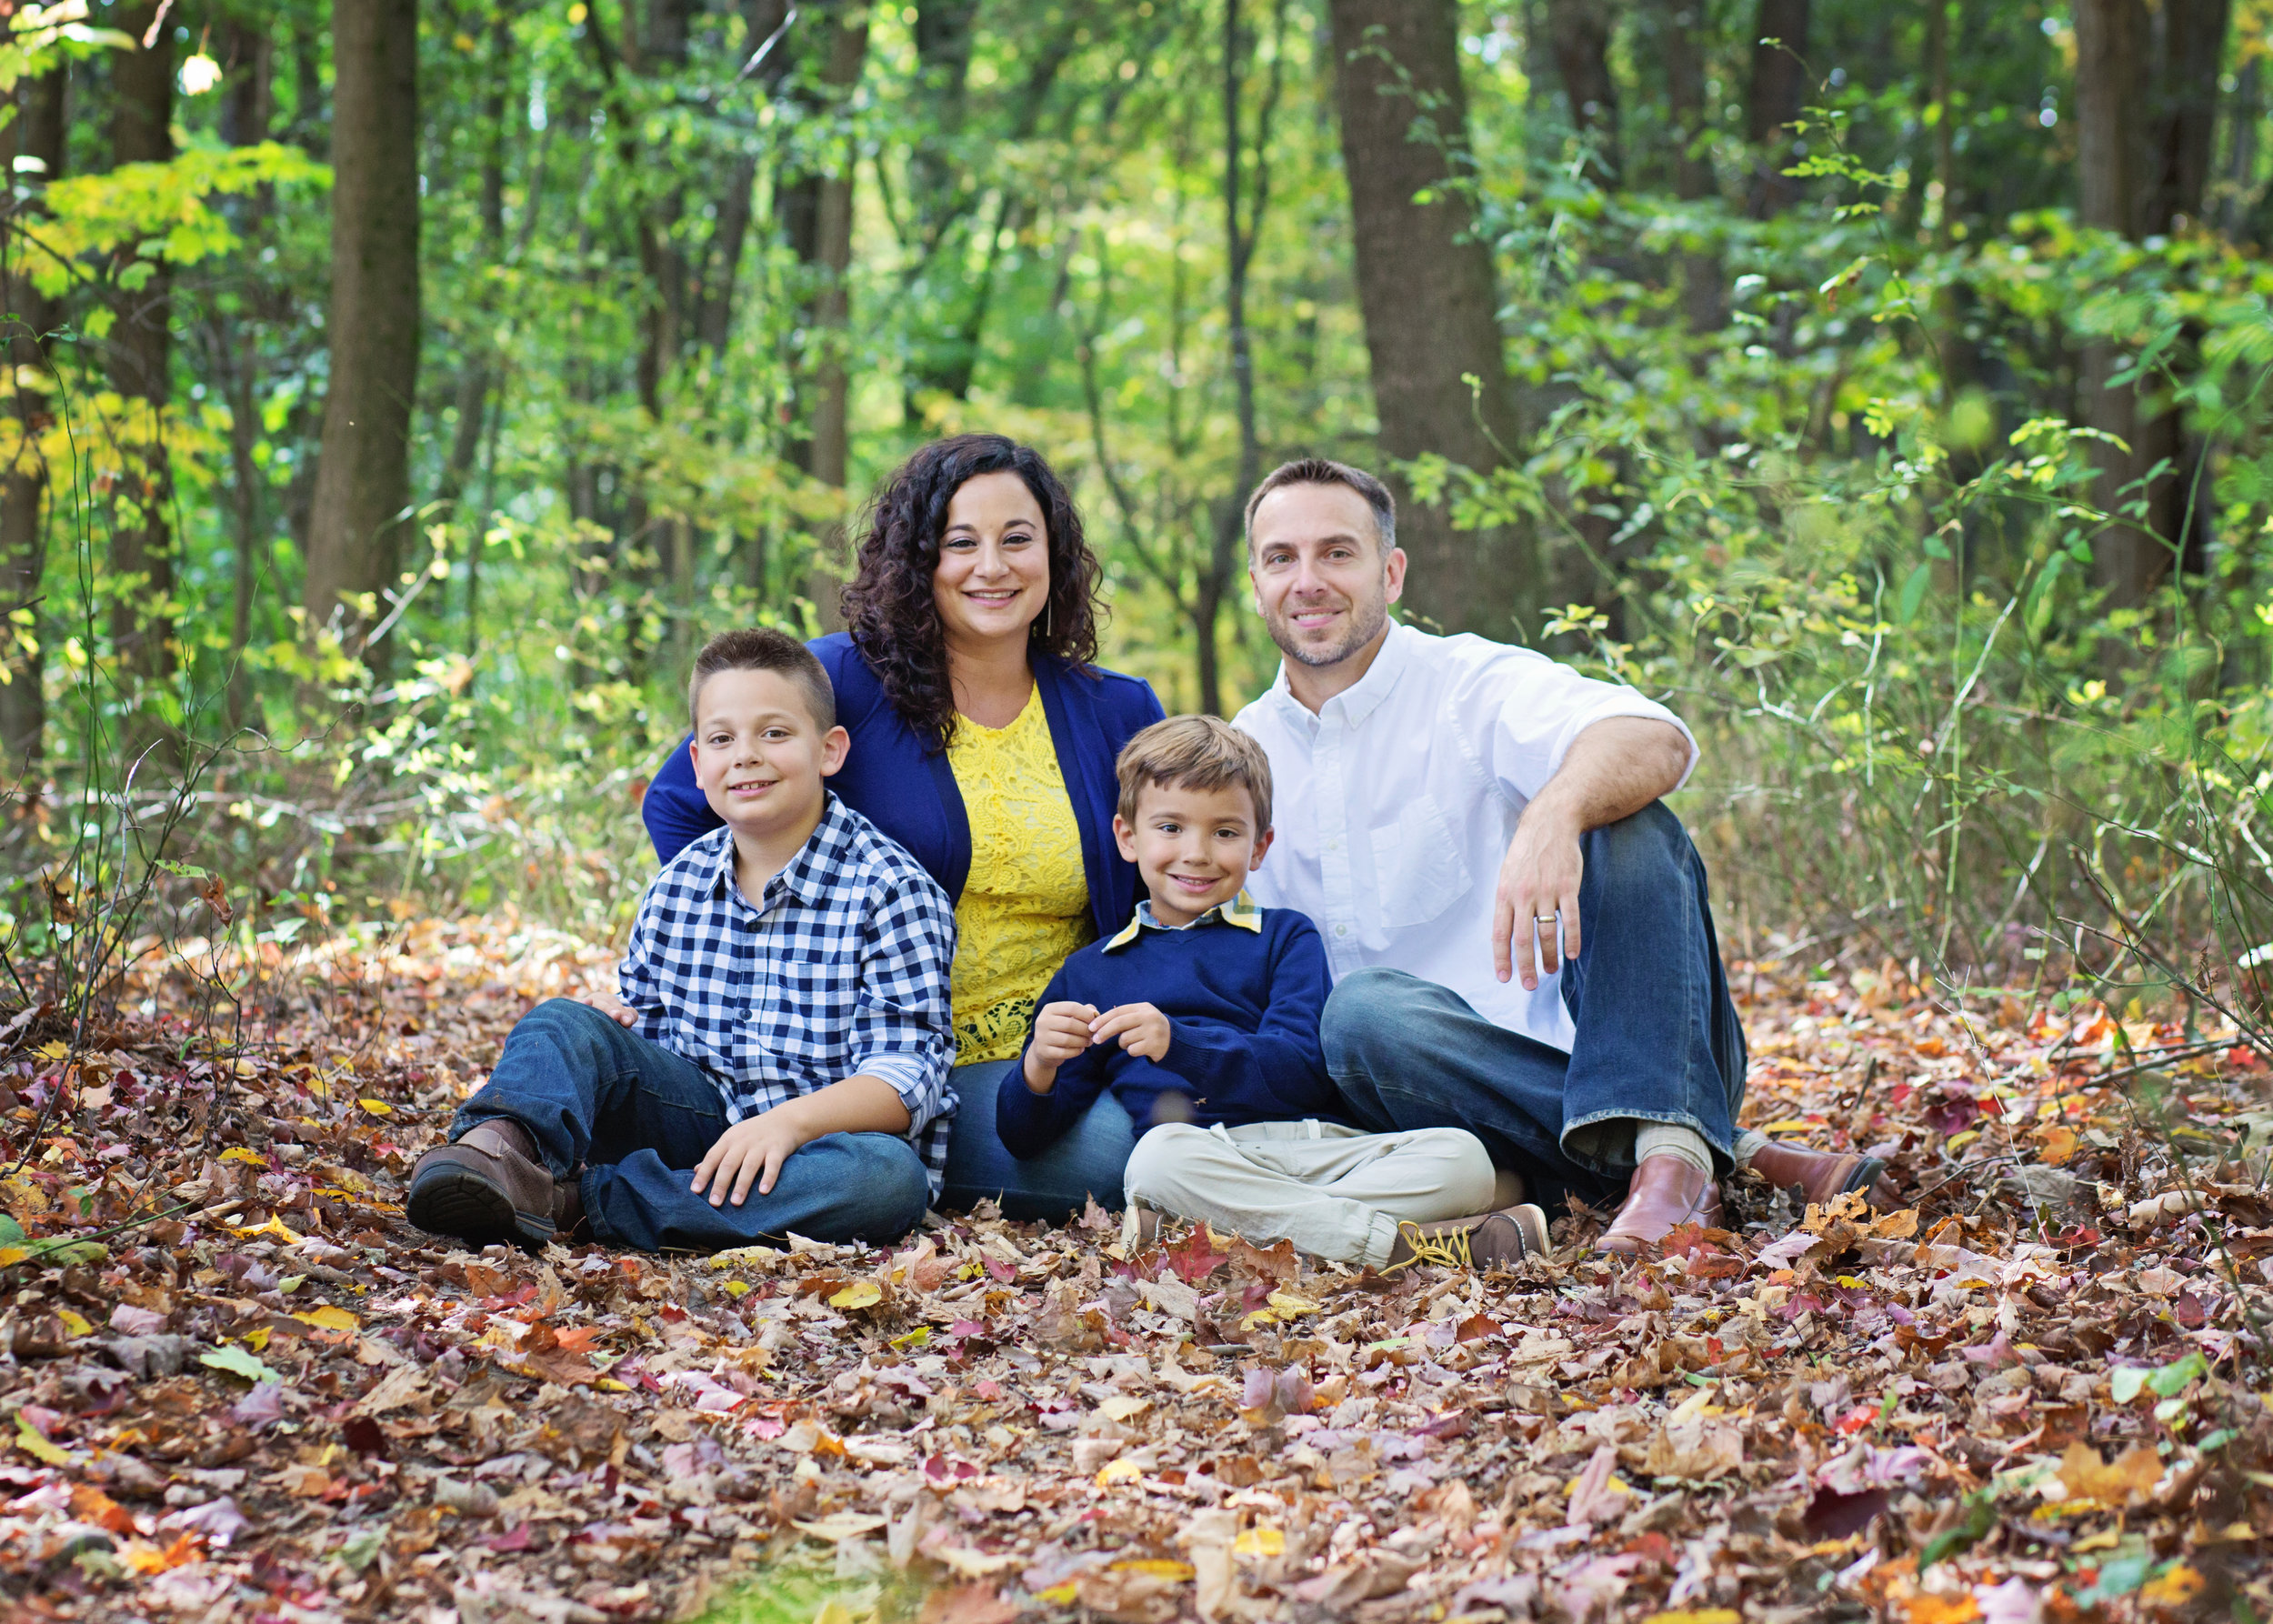 Meadville Family Photographer | Kelly Rhoades Photography